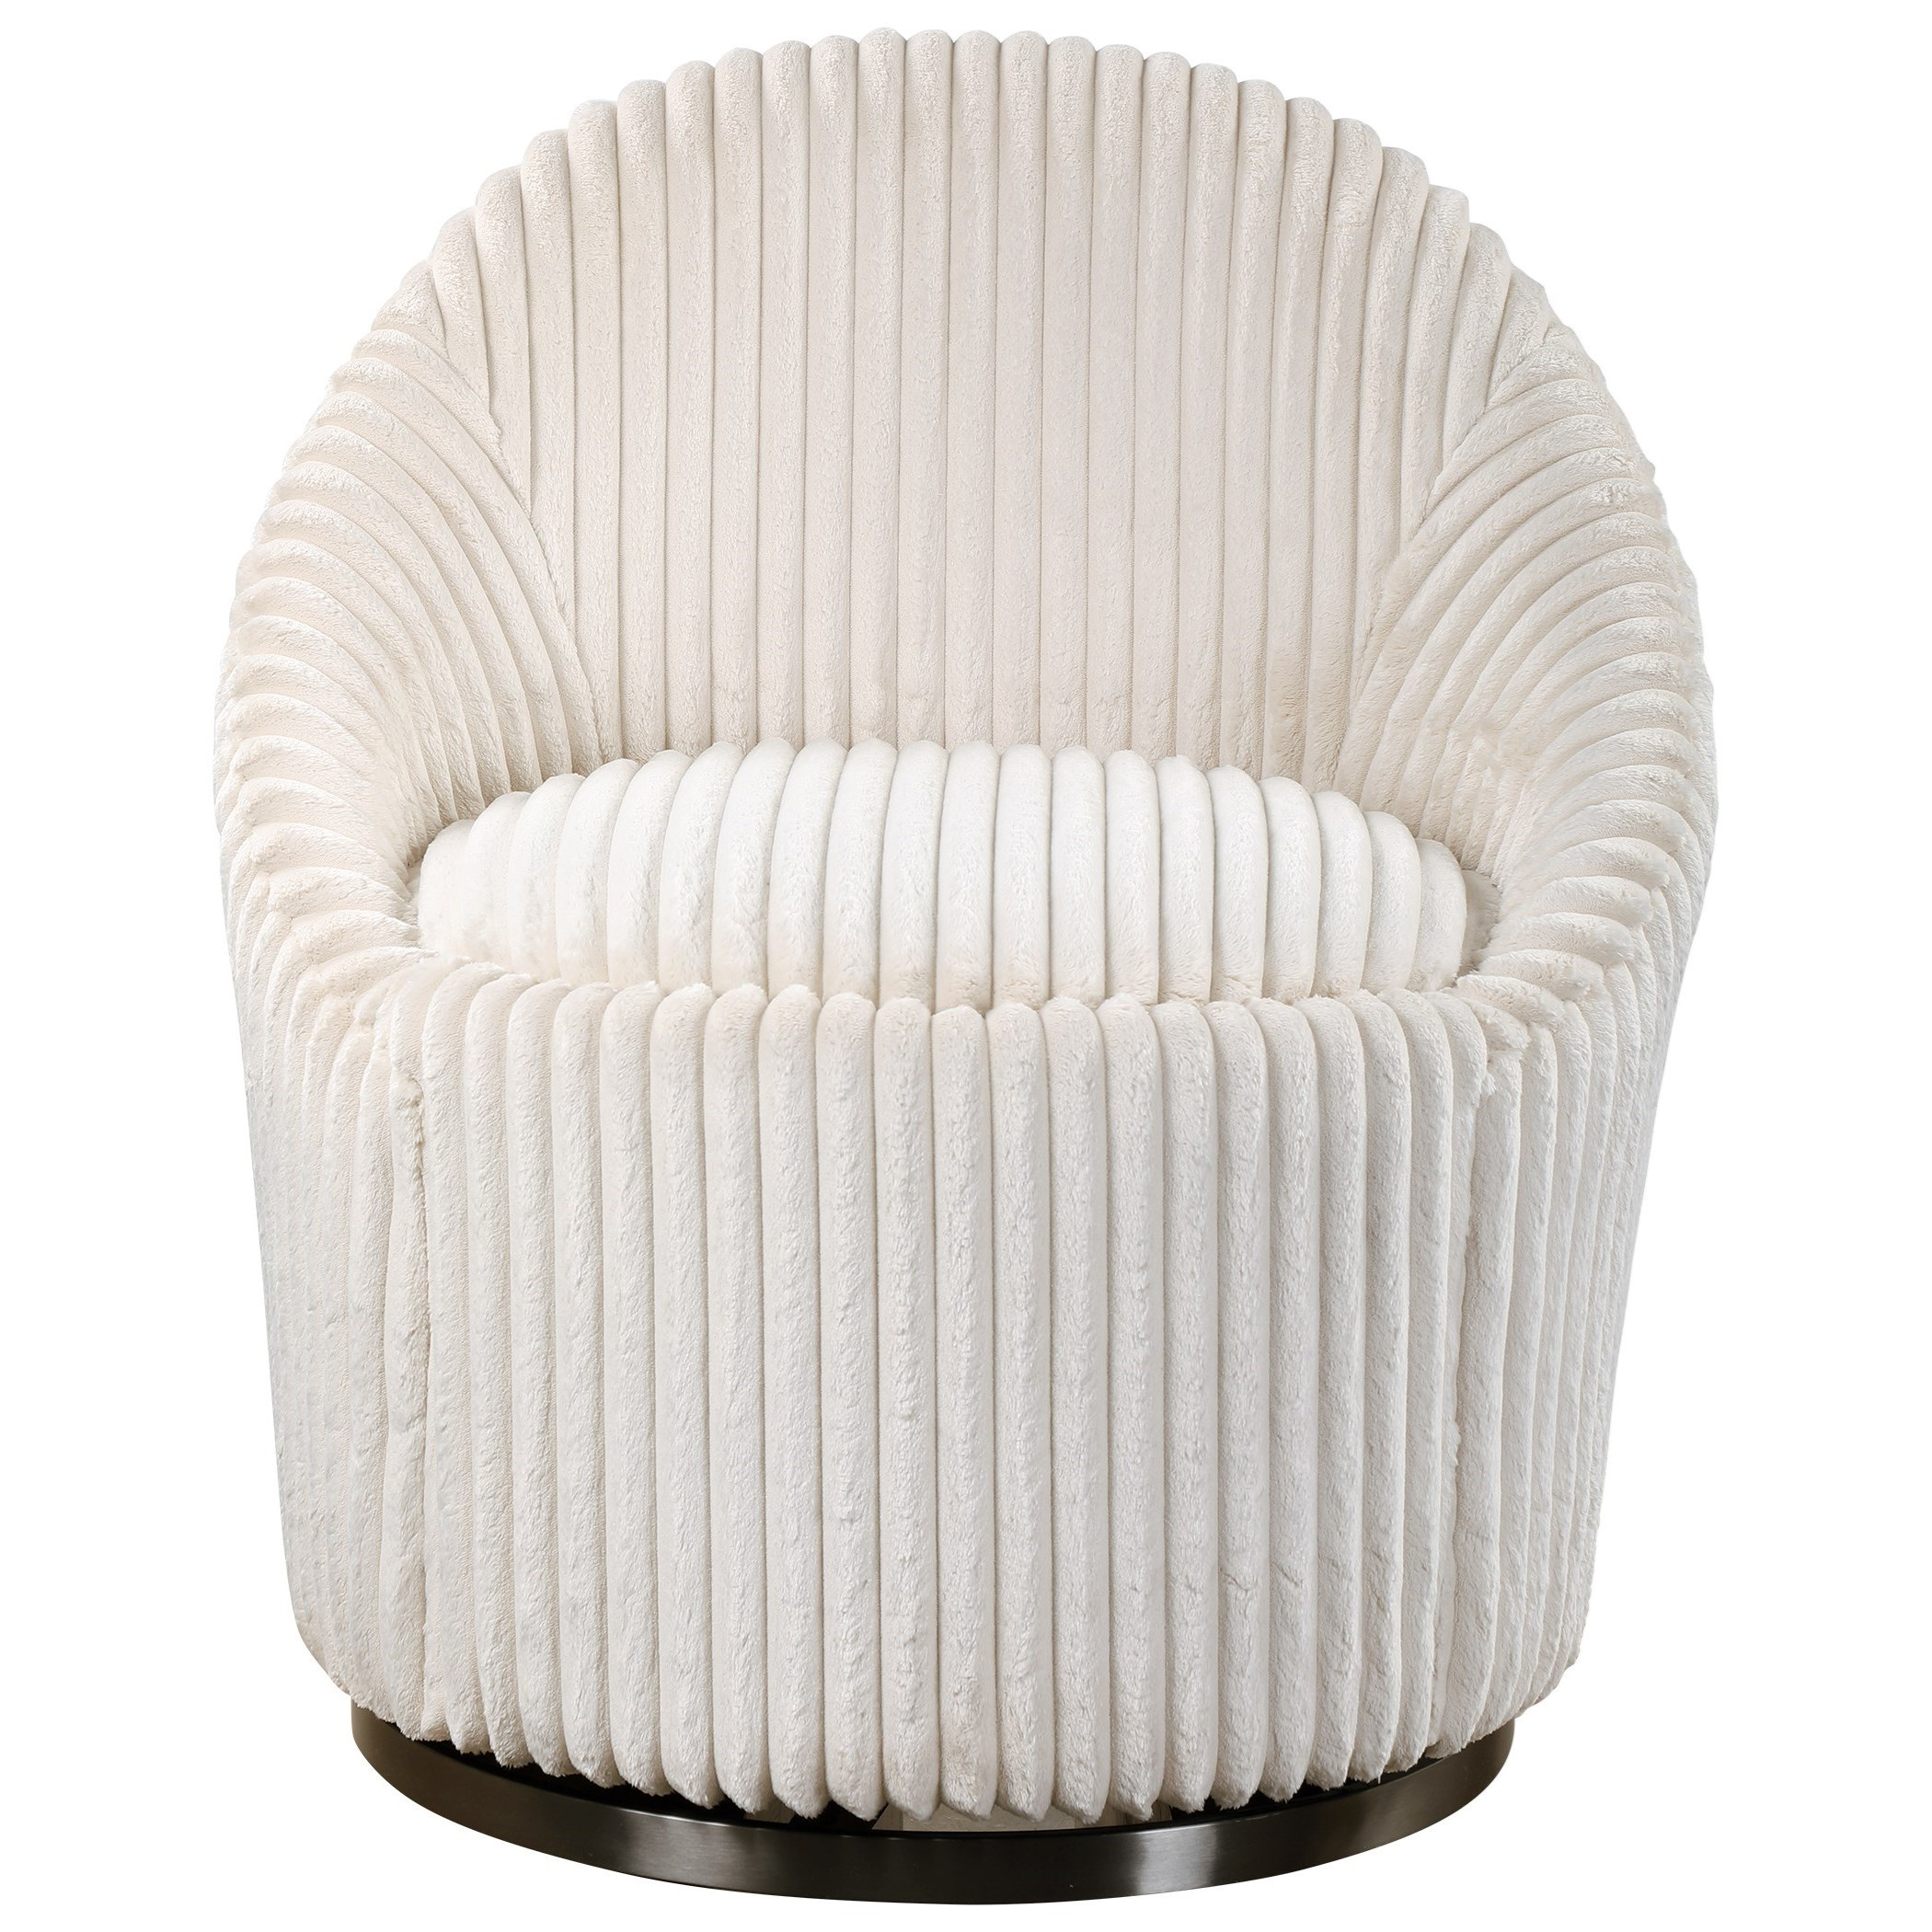 Accent Furniture - Accent Chairs Crue White Swivel Chair by Uttermost at Adcock Furniture